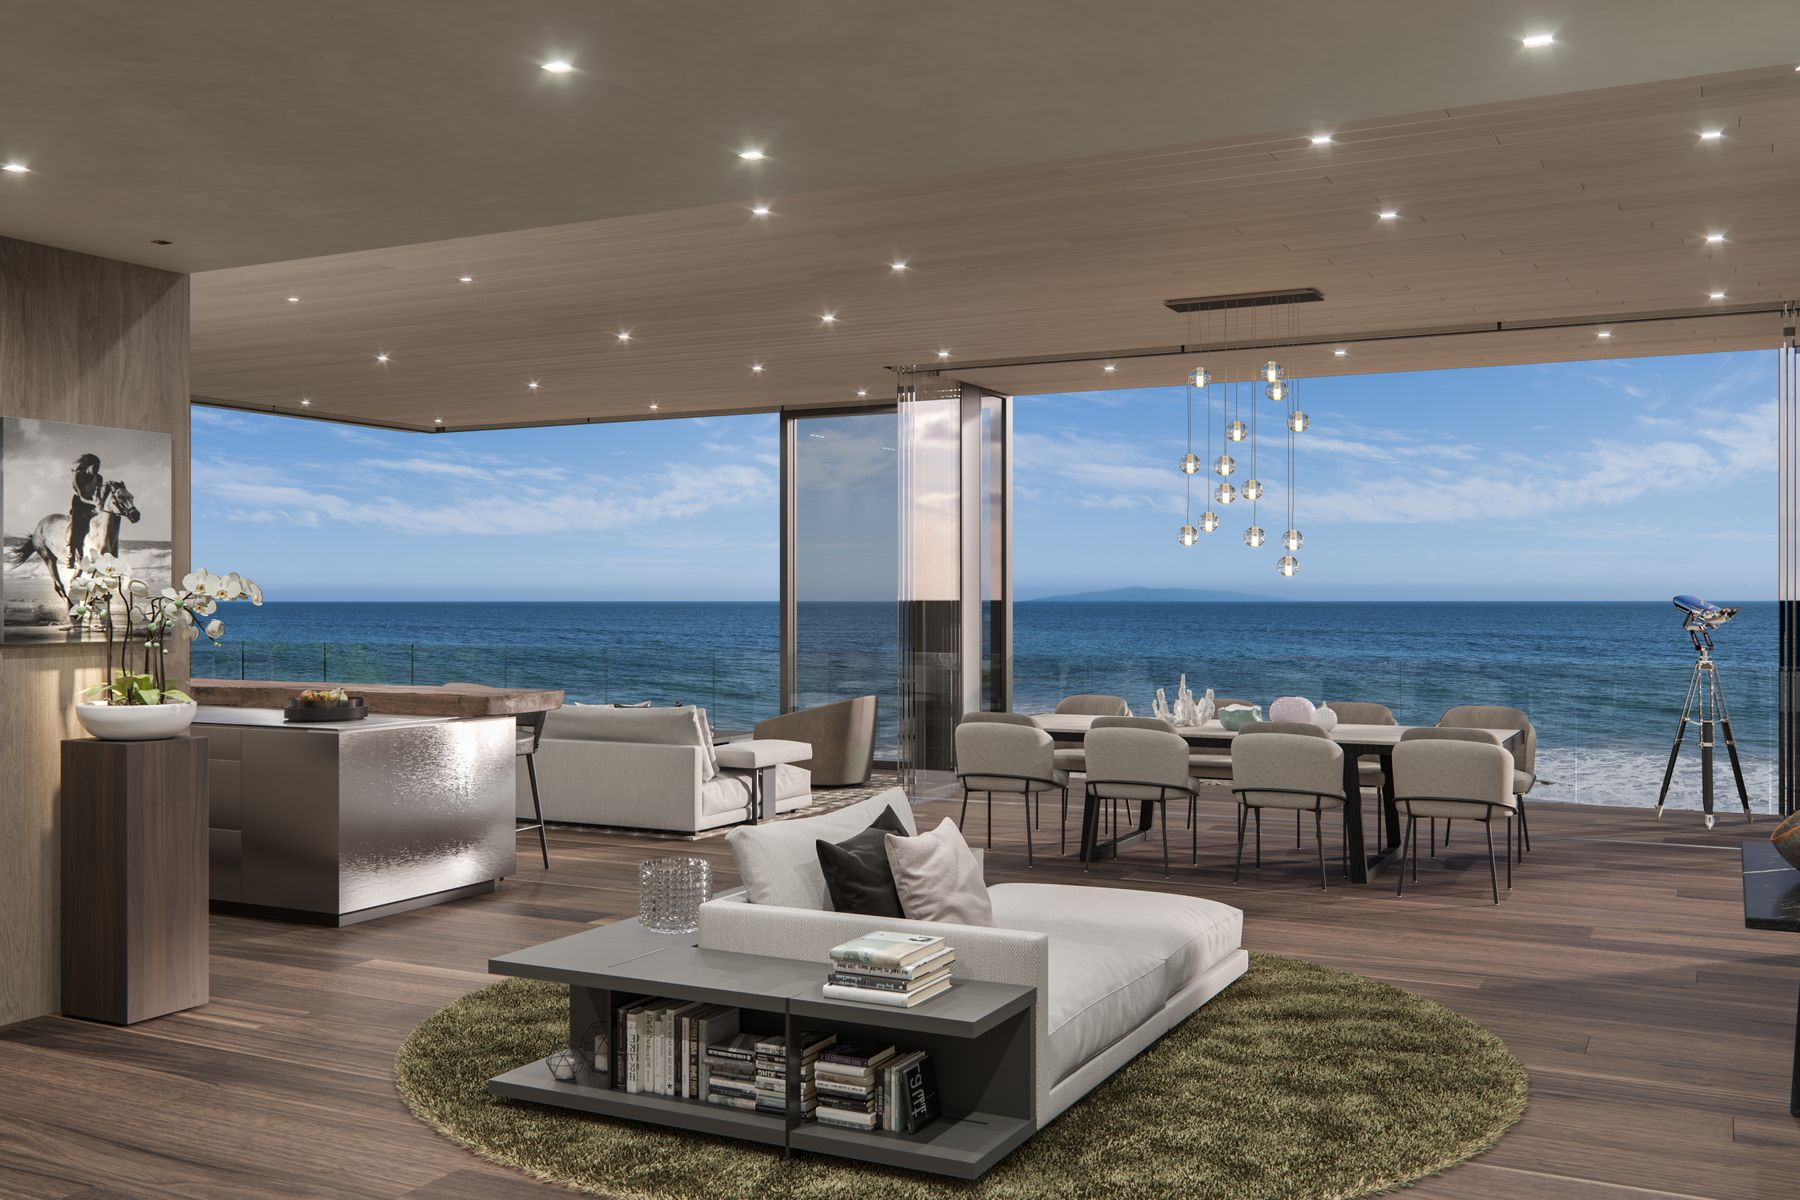 Single Family Homes for Sale at Brand New Malibu Oceanfront 24300 Malibu Road Malibu, California 90265 United States